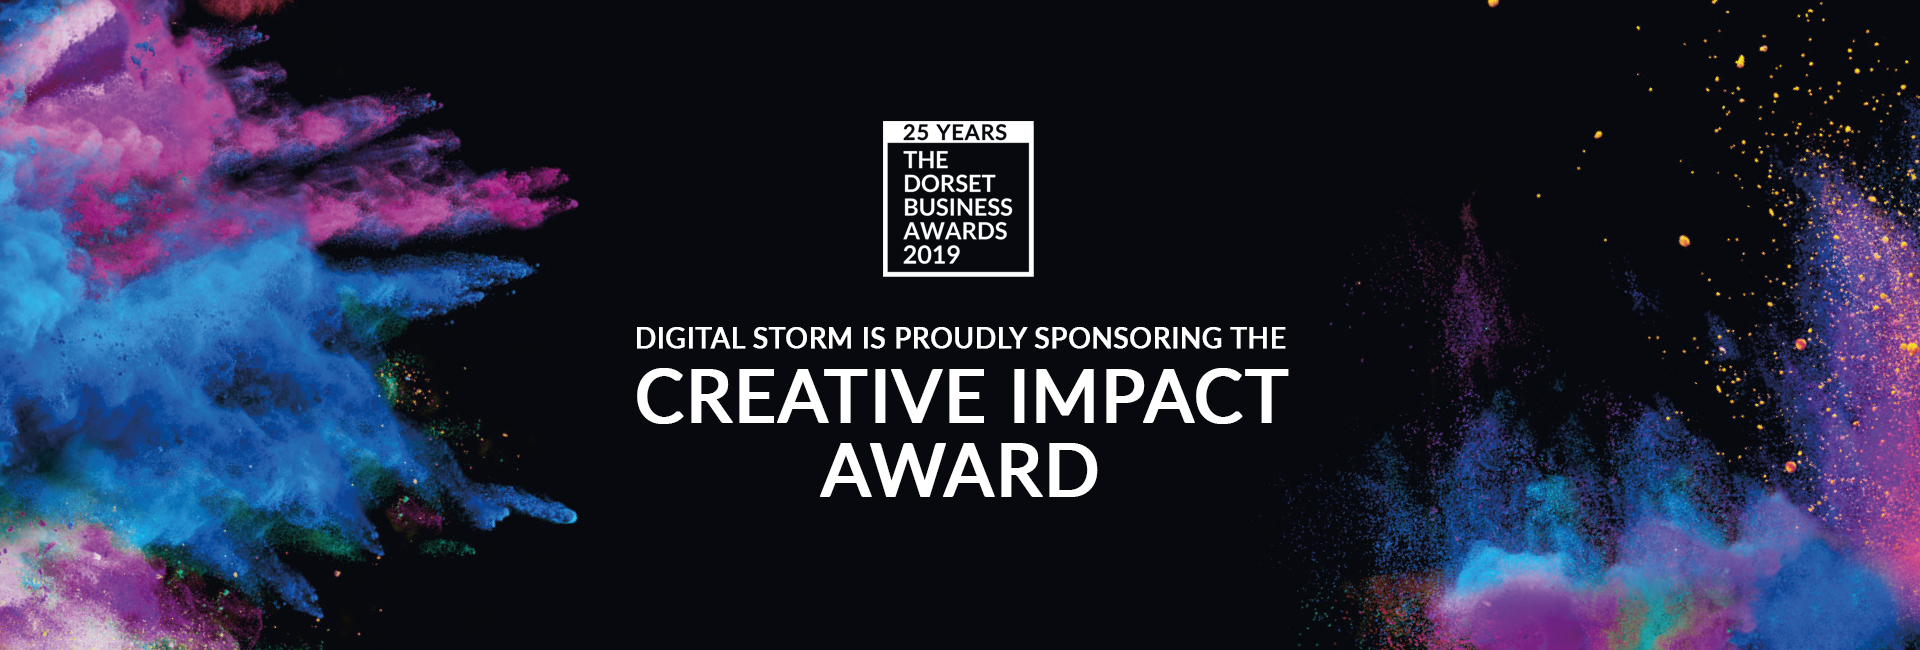 Digital Storm & Liz Lean PR sponsor 2019's Creative Impact Award for the Dorset Business Awards